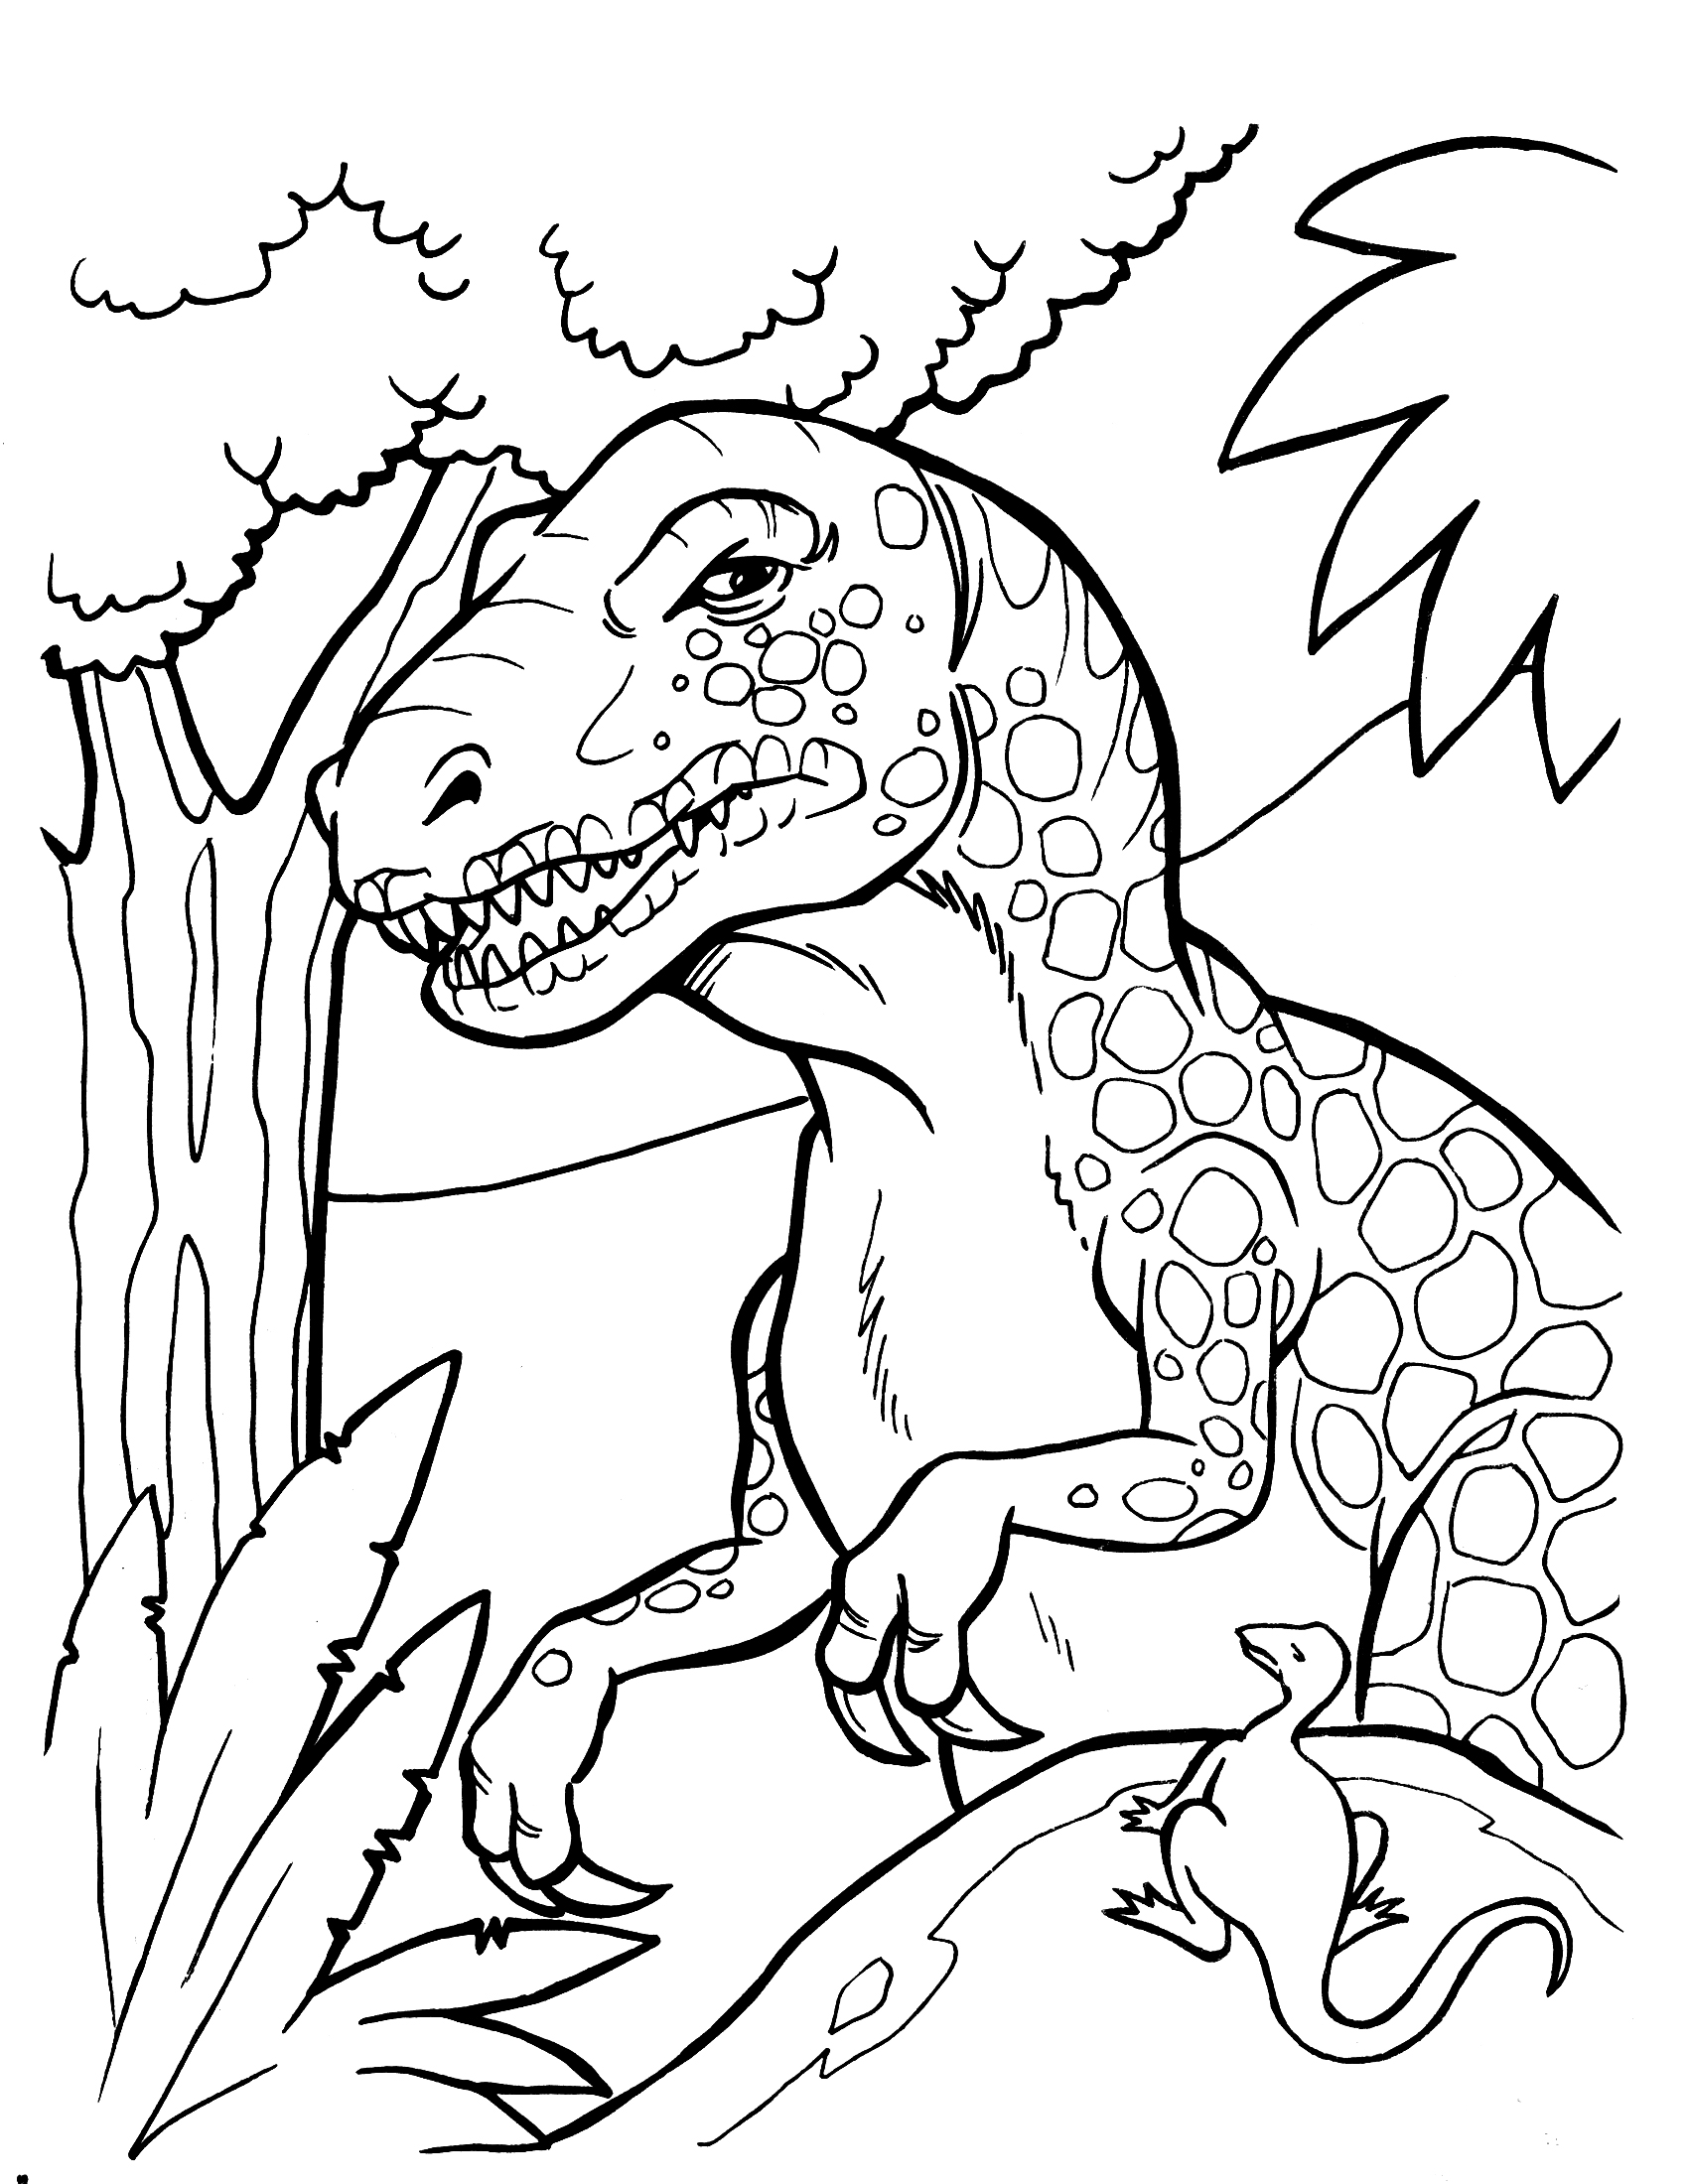 dinosaur coloring pages for kids printable dinosaur coloring pages for kids cool2bkids pages coloring for dinosaur kids